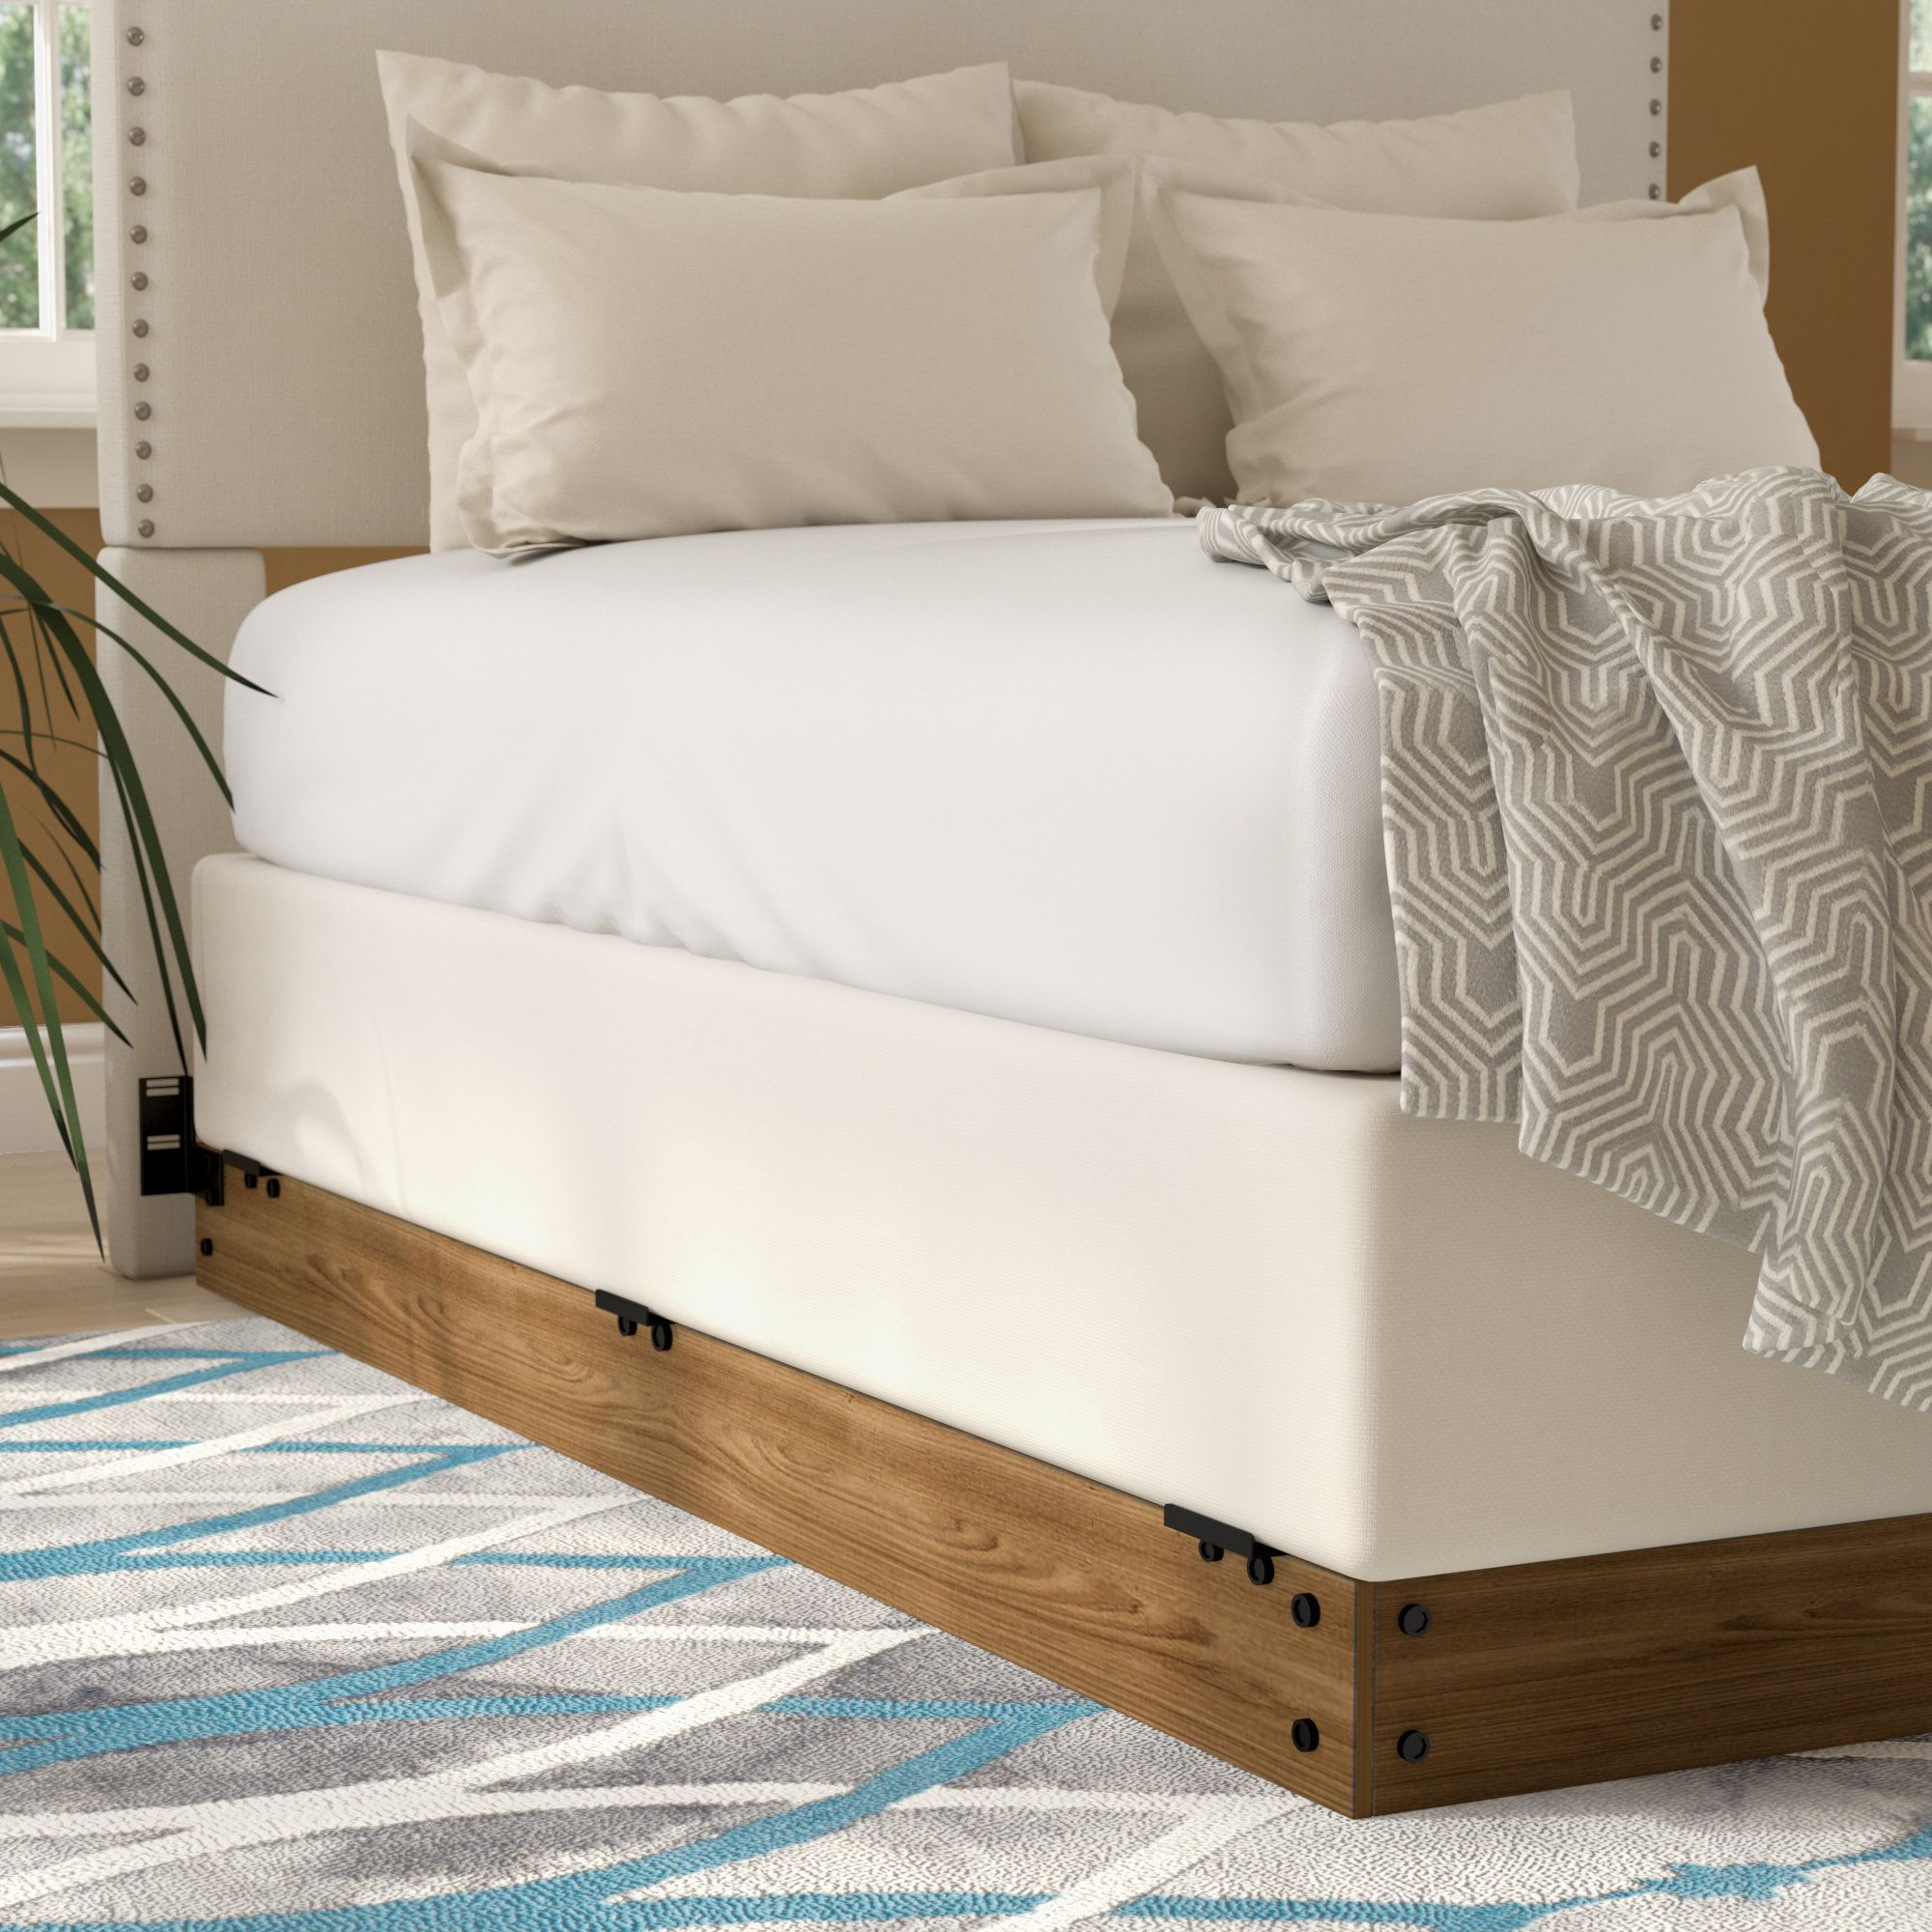 Wood Bed Frame Home Interior Design Ideas In 2020 Wood Bed